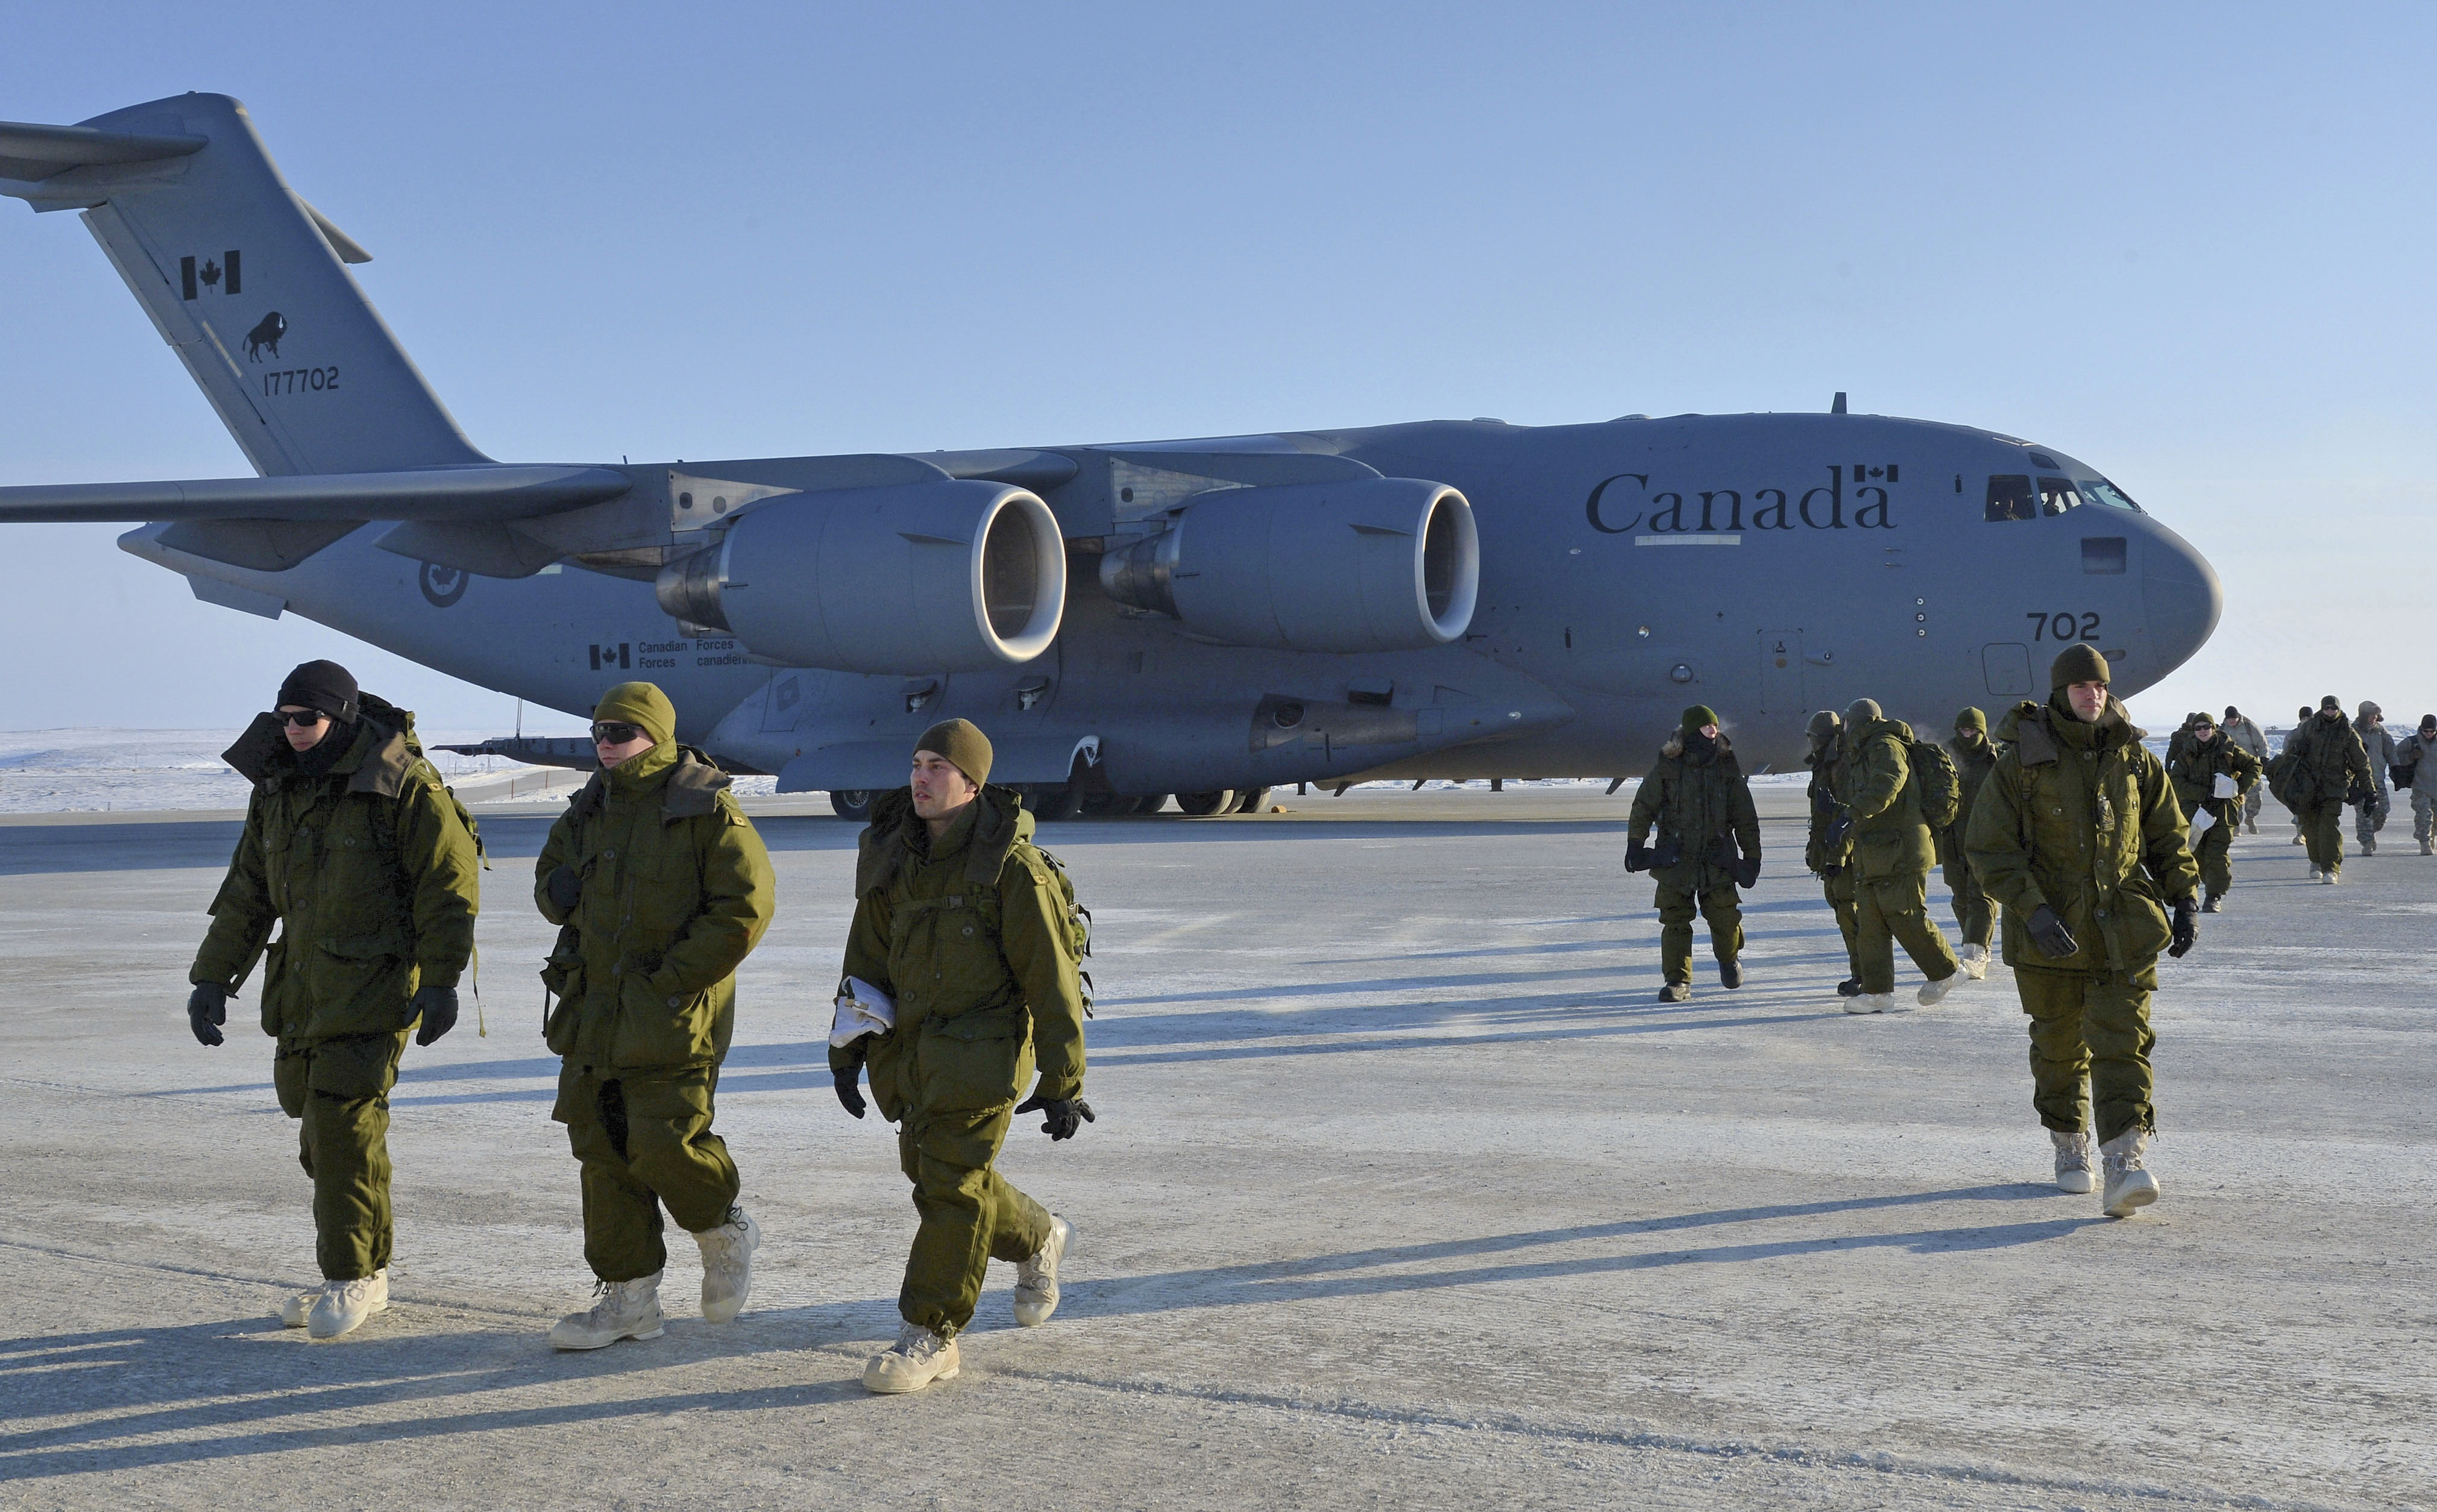 This CC-177 Globemaster III clearly shows its registration number – 177702 – on its tail. The first three digits (177) indicate the type of airframe (a Globemaster). The last three digits (702) are unique to this particular aircraft and are also painted on the nose. In this photo, Canadian Armed Forces personnel disembark in Cambridge Bay, Nunavut, during Operation Nunalivut 2015 on April 9, 2015. PHOTO: Petty Officer 2nd Class Belinda Jeromchuk